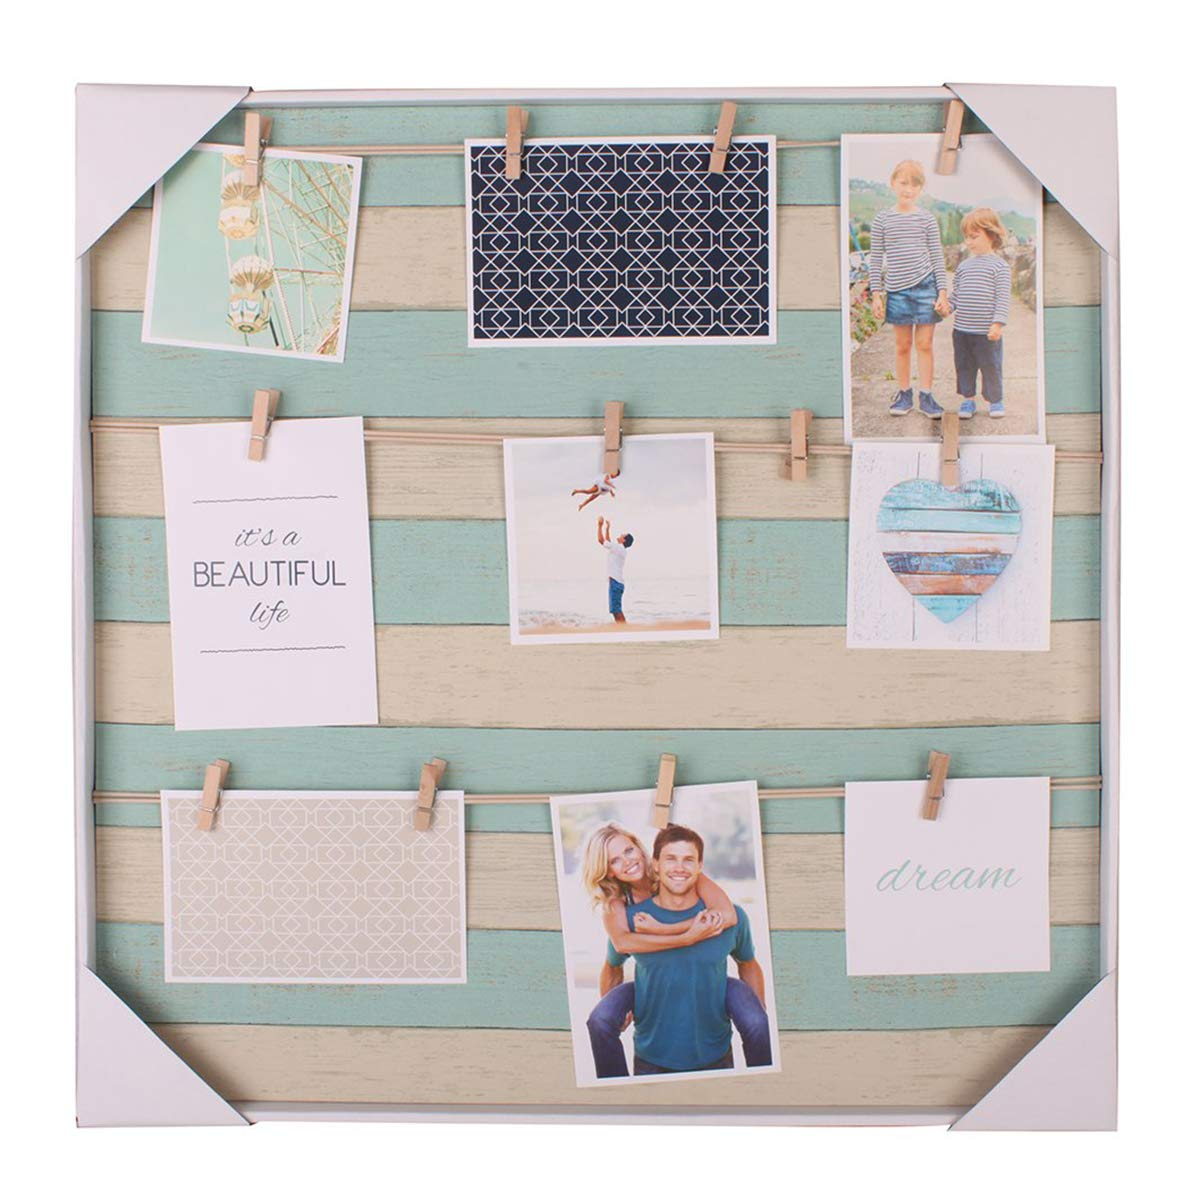 HANTAJANSS Clip Photo Holder, Photo Collage Frame, Large Picture Display Frame with 12 Wood Clothespin Clips for Hanging Home Decoration 20 ×20 inches Light Blue by HANTAJANSS